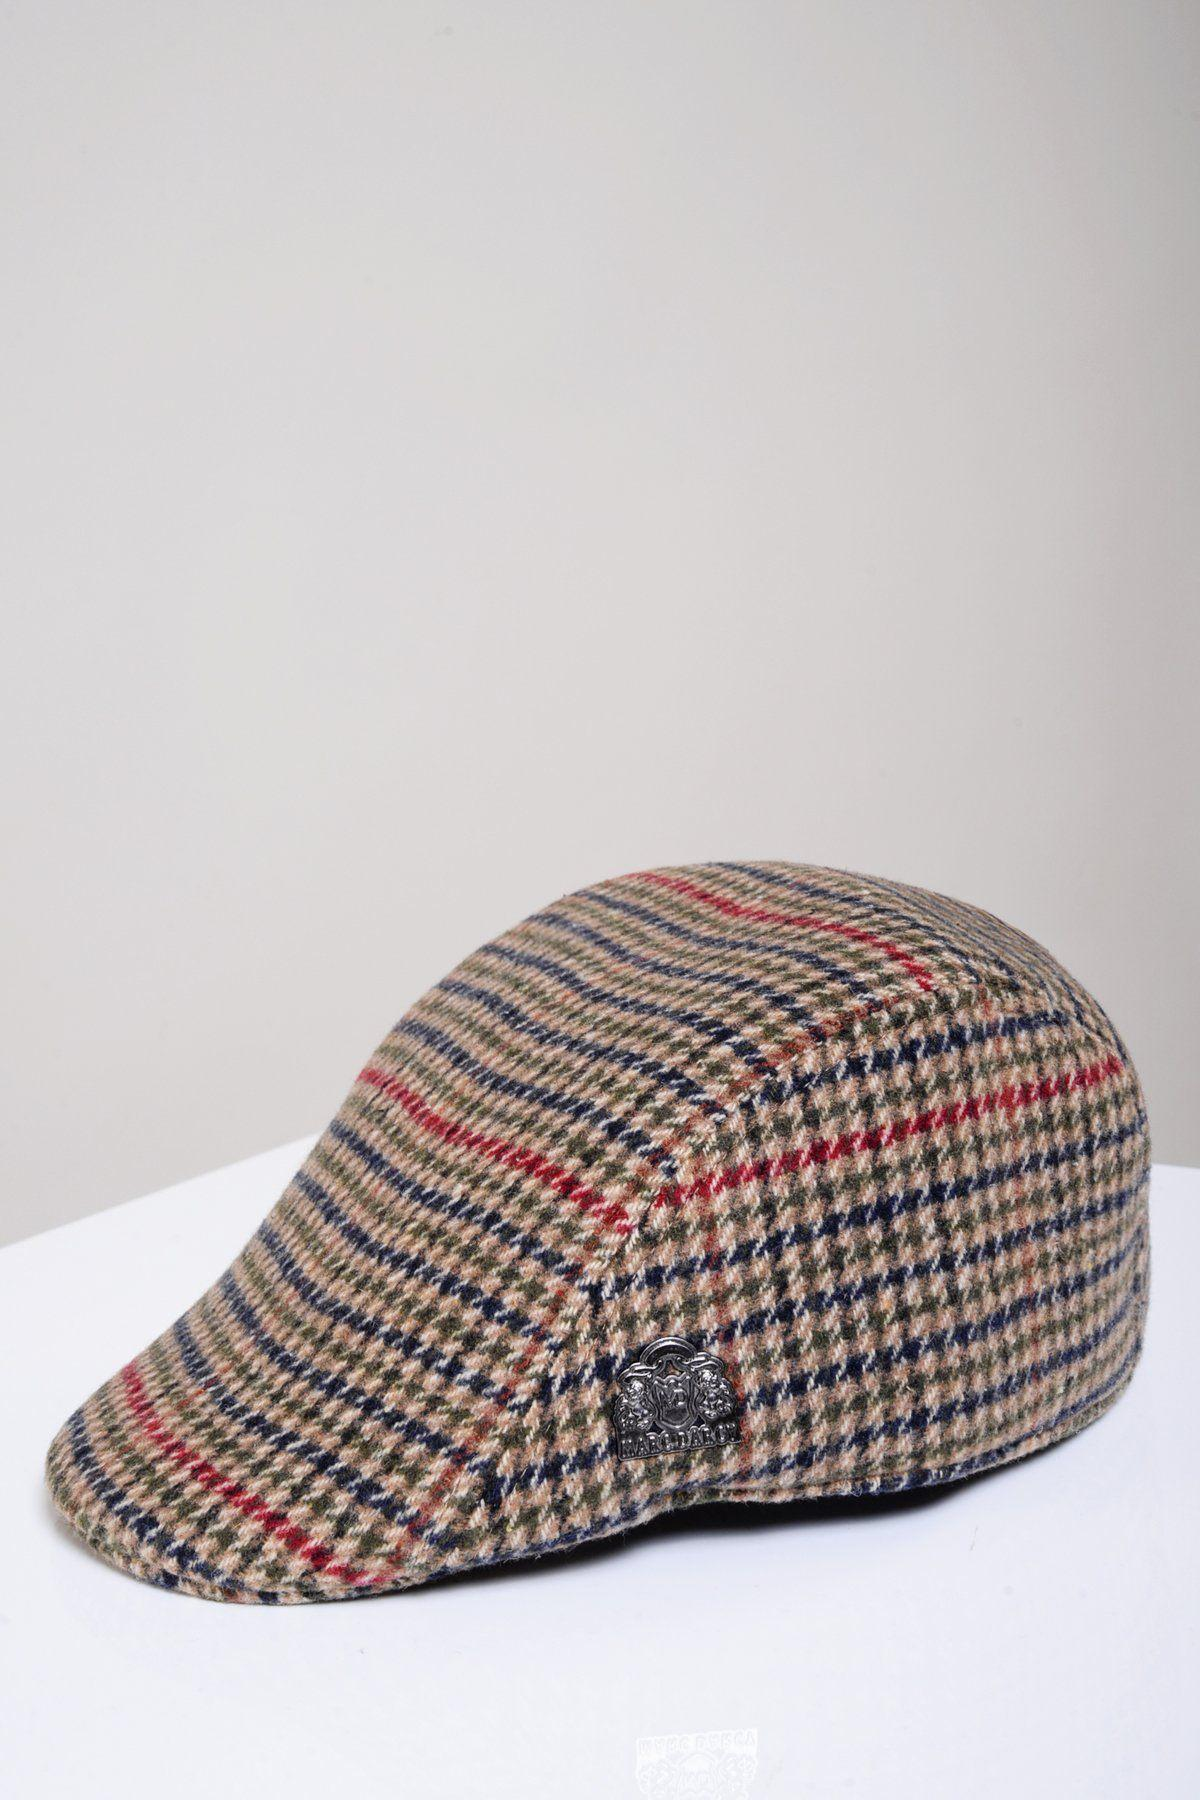 Mens Marc Darcy Oak Tweed Check Print Flat Cap available in S//M or L//XL